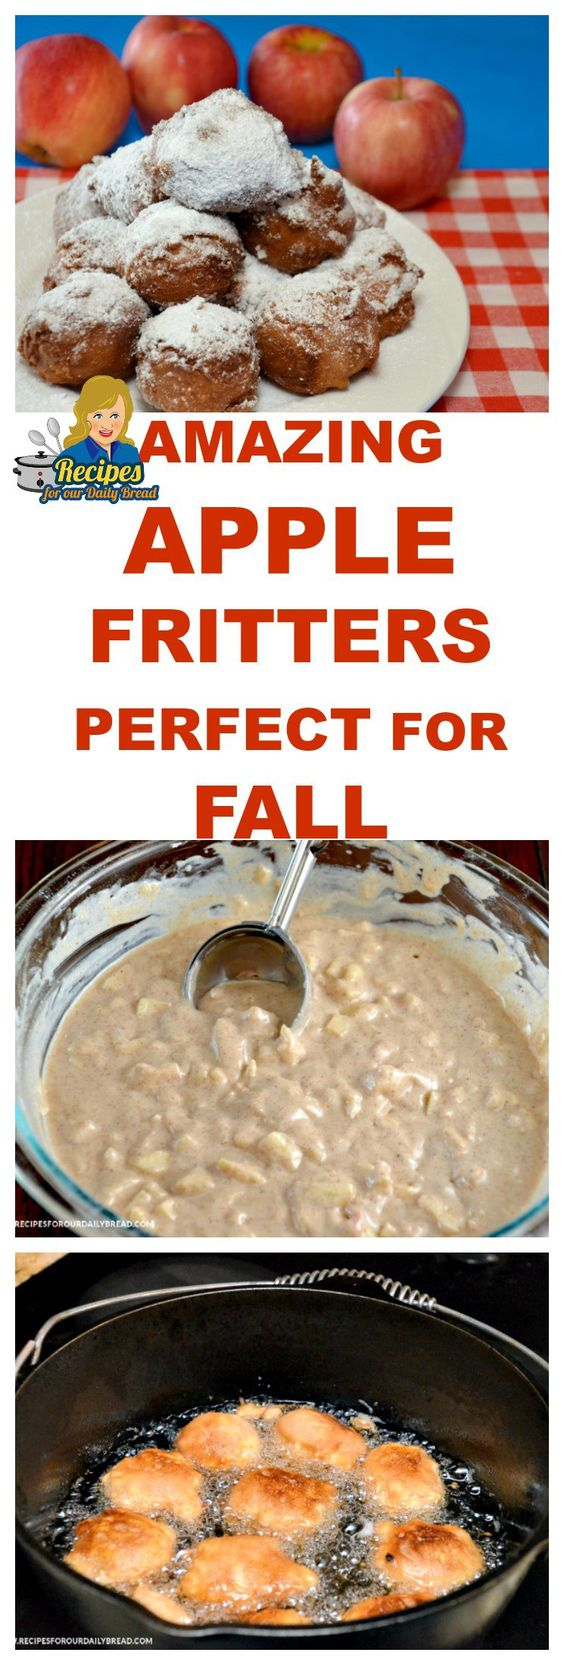 AMAZING APPLE FRITTERS PERFECT FOR FALL  PRINT RECIPE HERE: http://recipesforourdailybread.com/best-apple-fritters-tn/